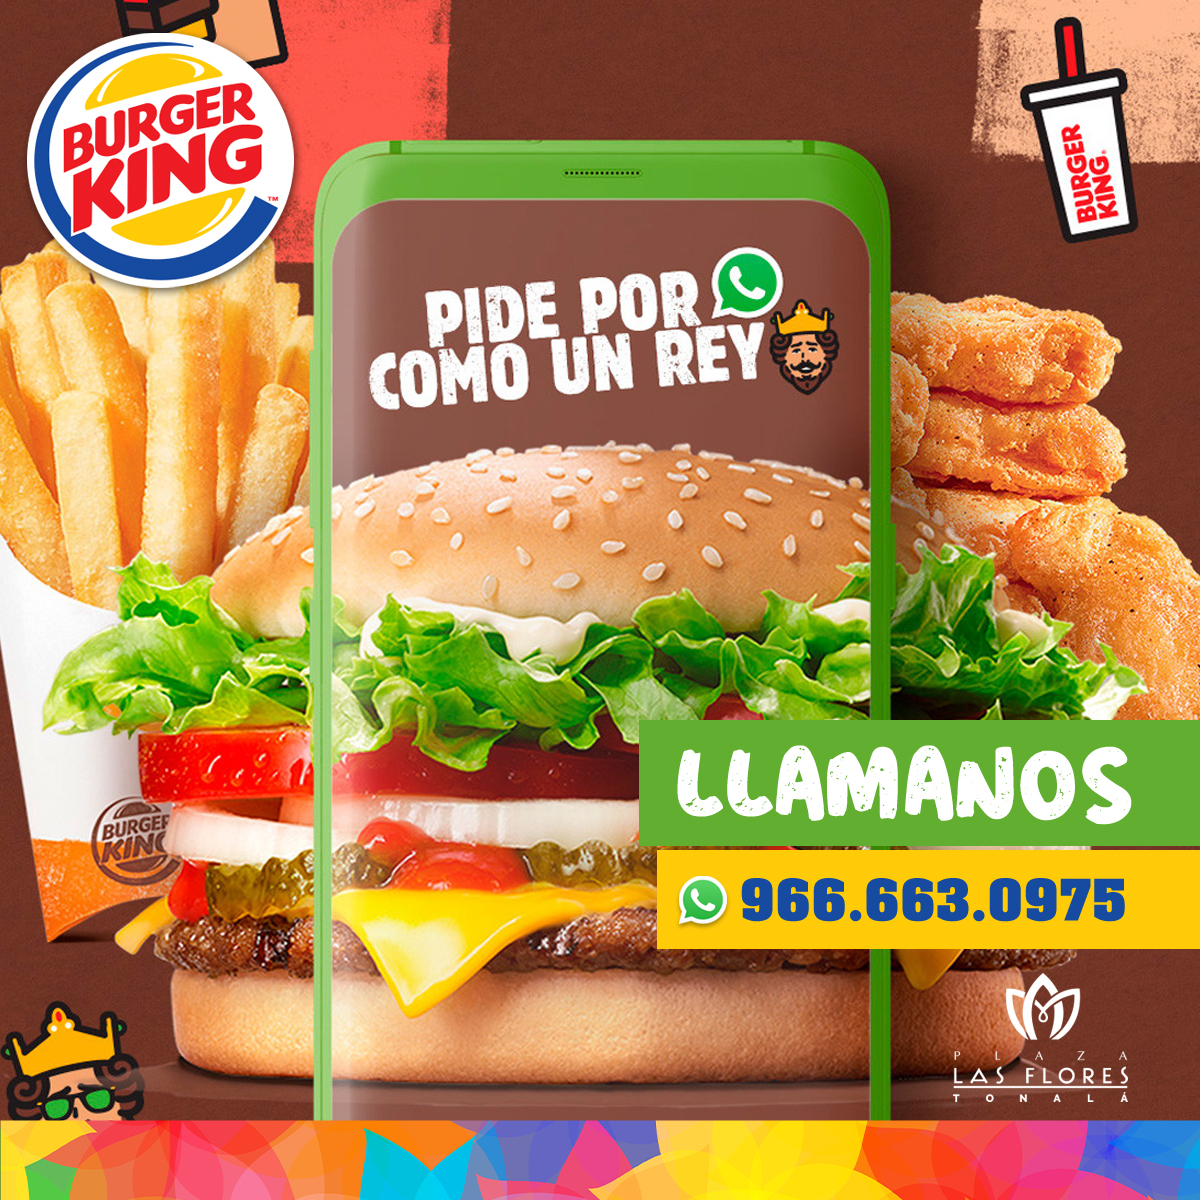 LasFlores-Telefonos-BurgerKing copy